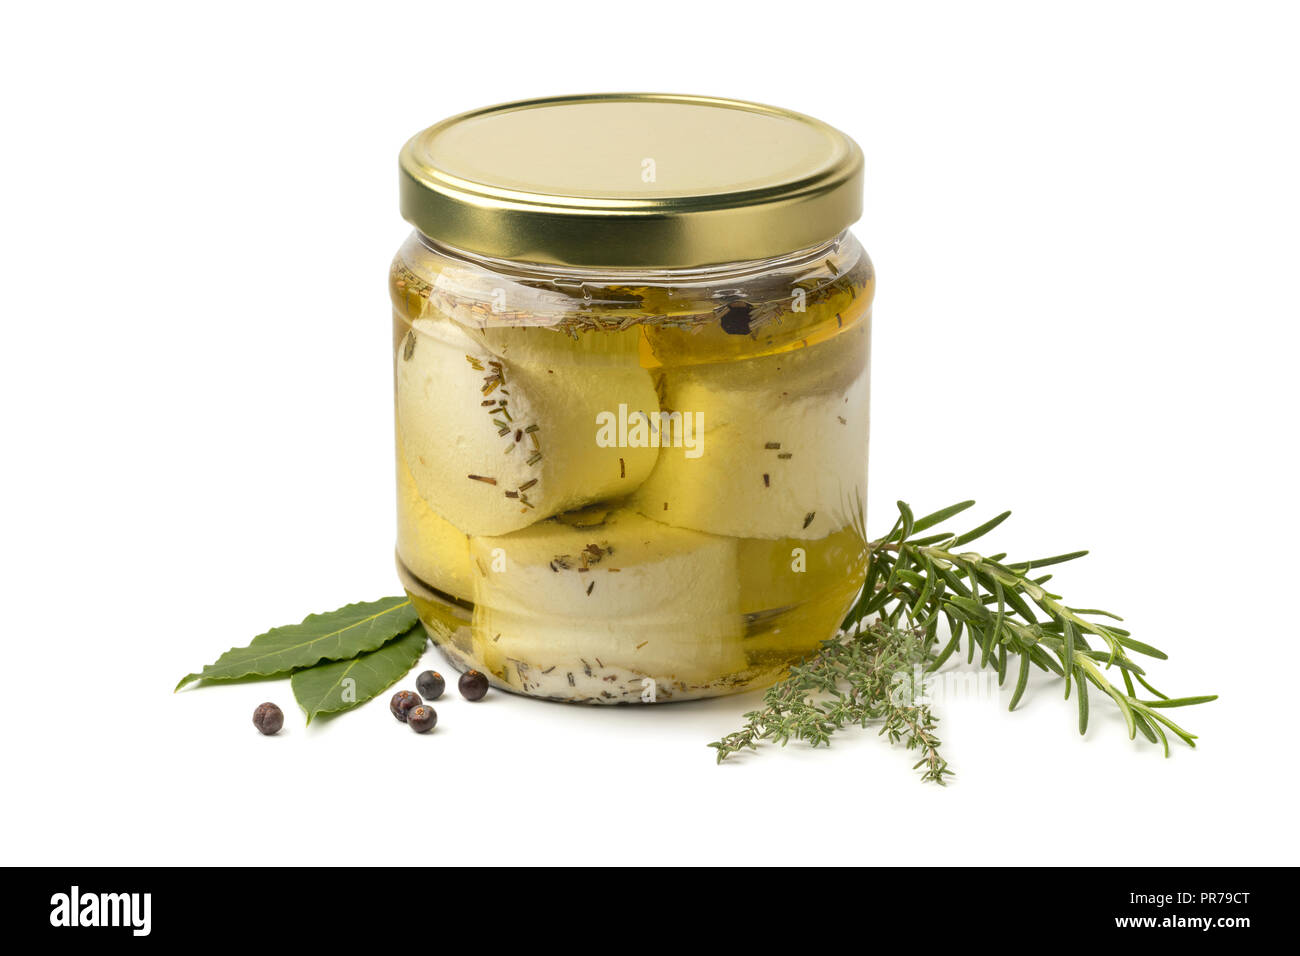 Glass jar with preserved white organic Dutch goat cheese and fresh herbs isolated on white background - Stock Image